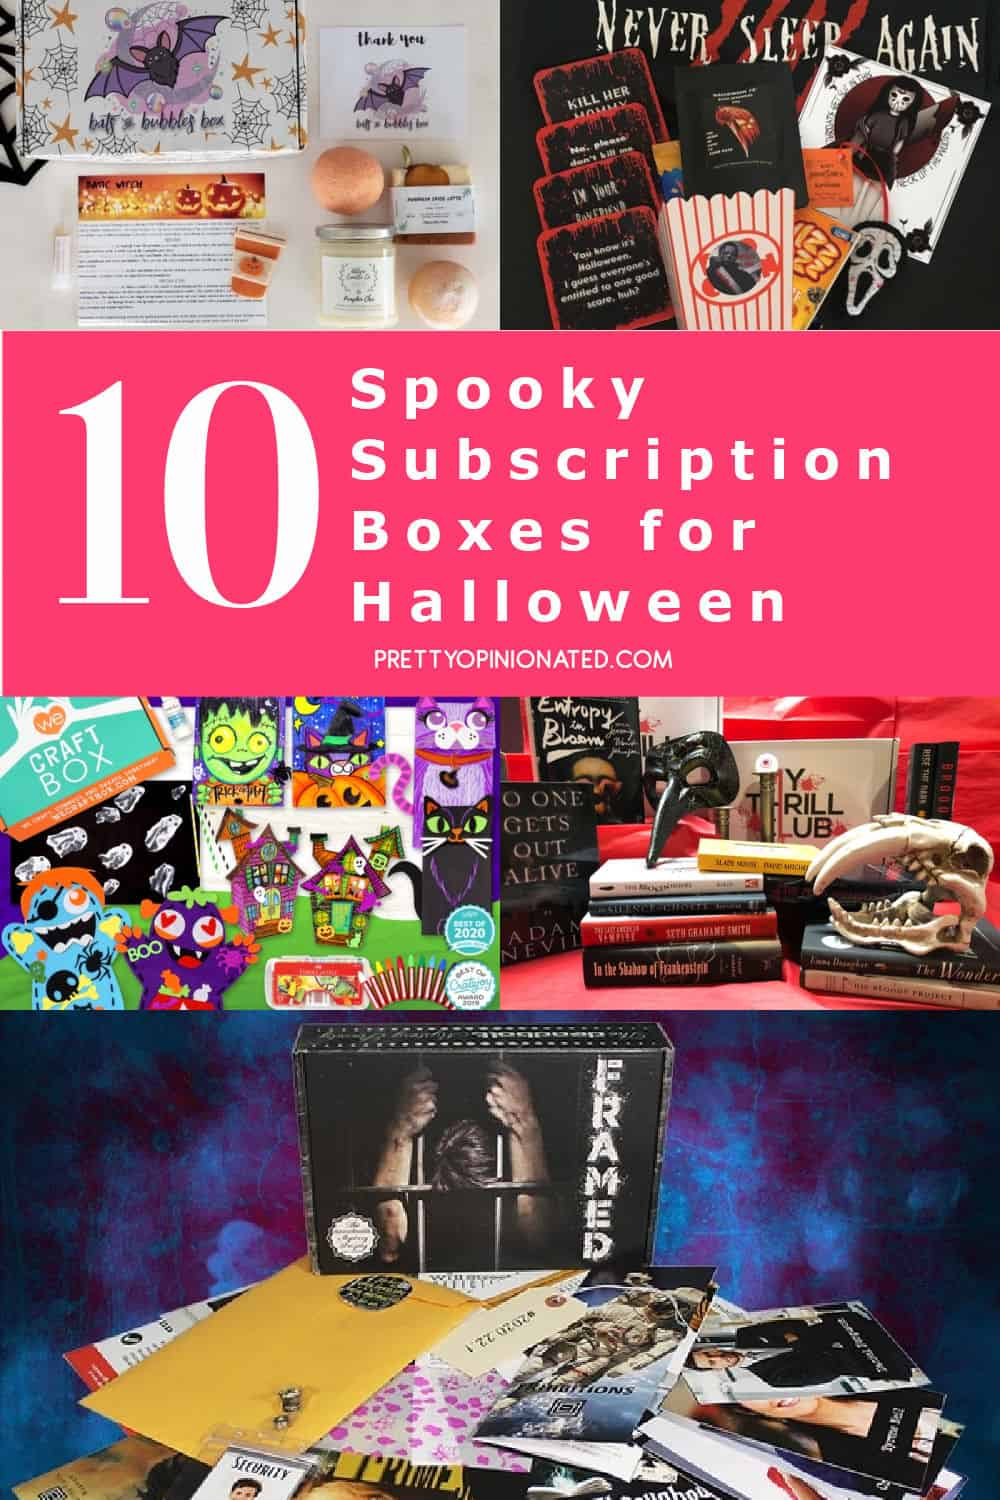 There's no better time to get your spooky on than right now. These Halloween subscription boxes are loaded with goodies that keep the fun going all year long. Check them out below!